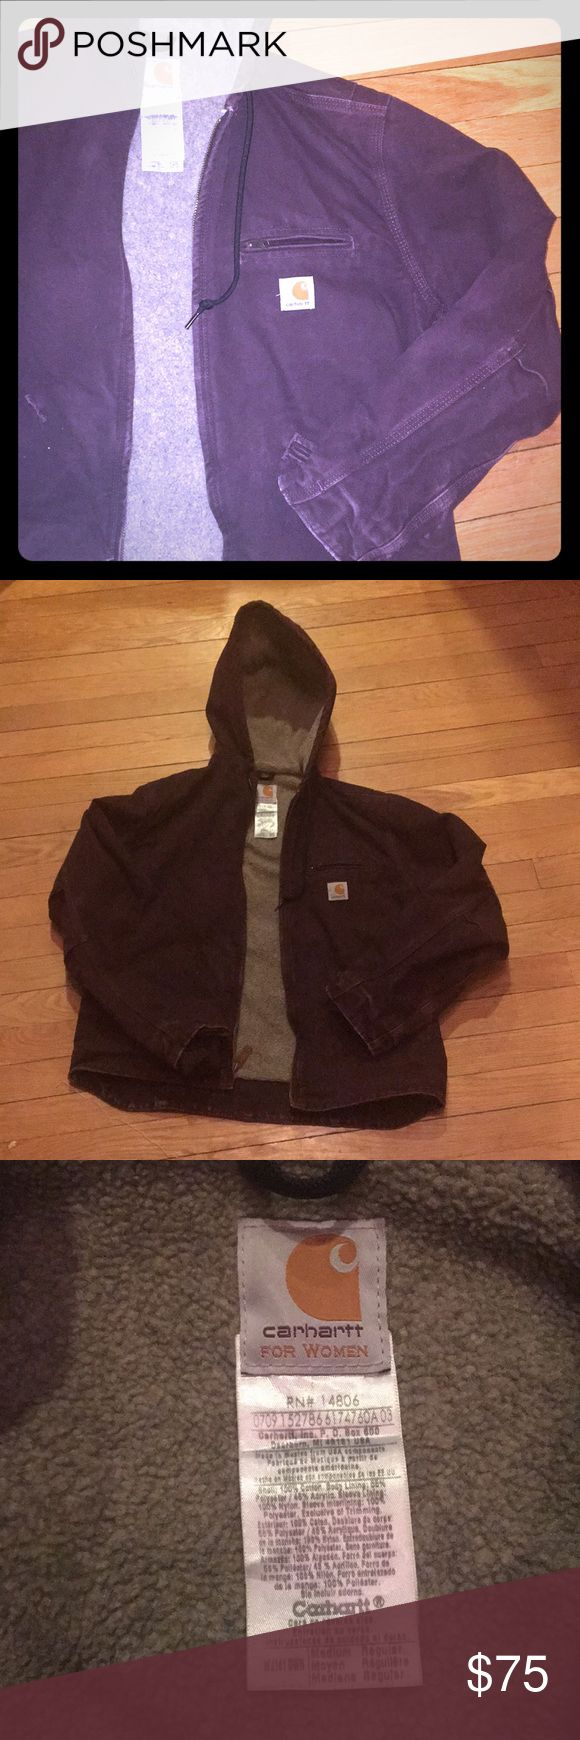 Carhartt eggplant dark purple winter jacket Amazingly warm jacket. I used to wear often, but no longer work in the field but the office so clearing out the closet. Some wear on the color, but just looks worn in, great condition and tons of life left! Carhartt Jackets & Coats Utility Jackets